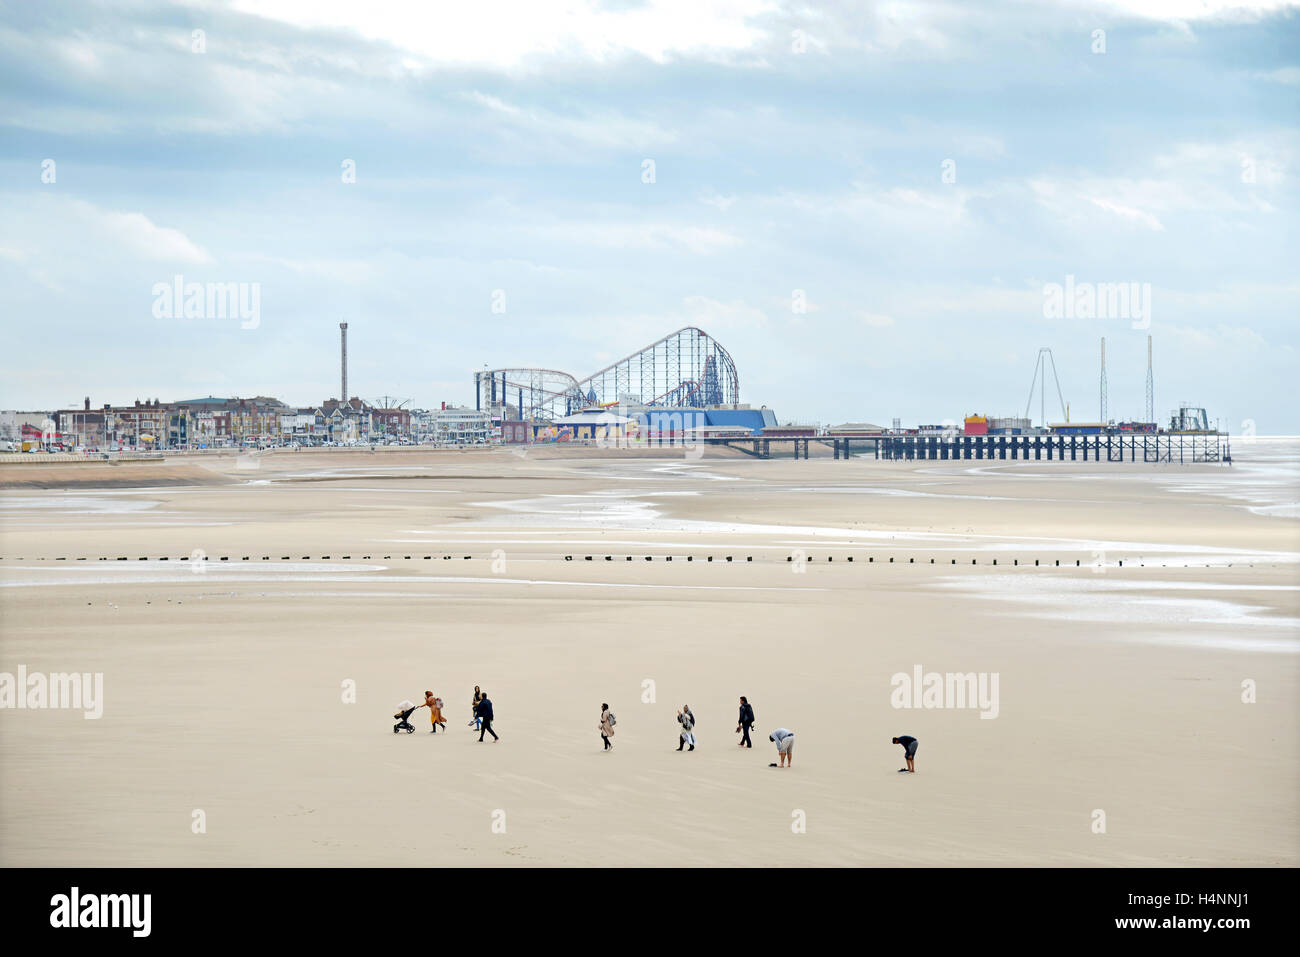 A family group walks across the beach between the Central Pier and The Pleasure Beach at Blackpool, England. - Stock Image